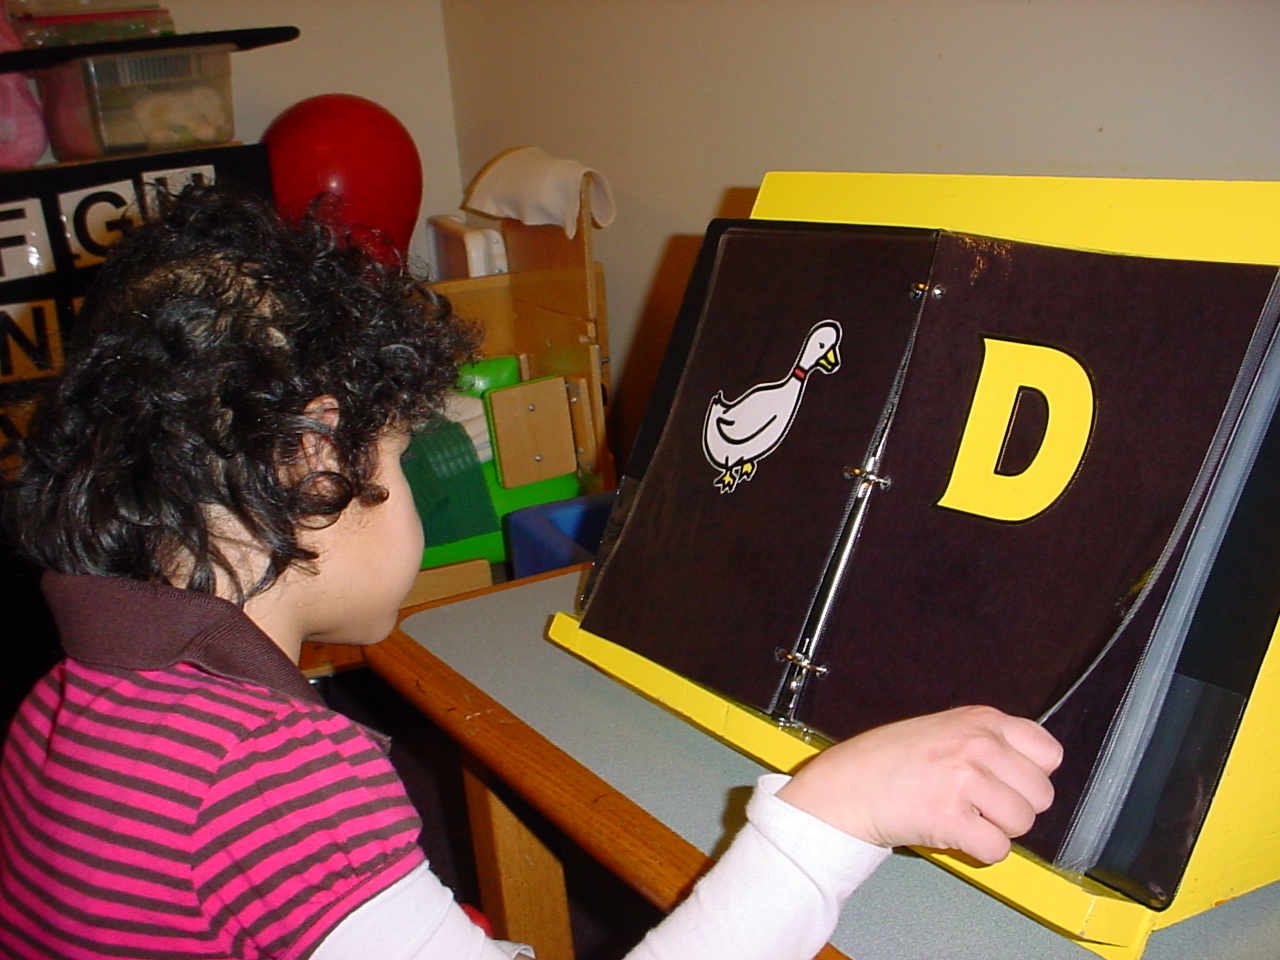 Teaching Letter Differentation To Students Who Are Blind Or Visually Impaired